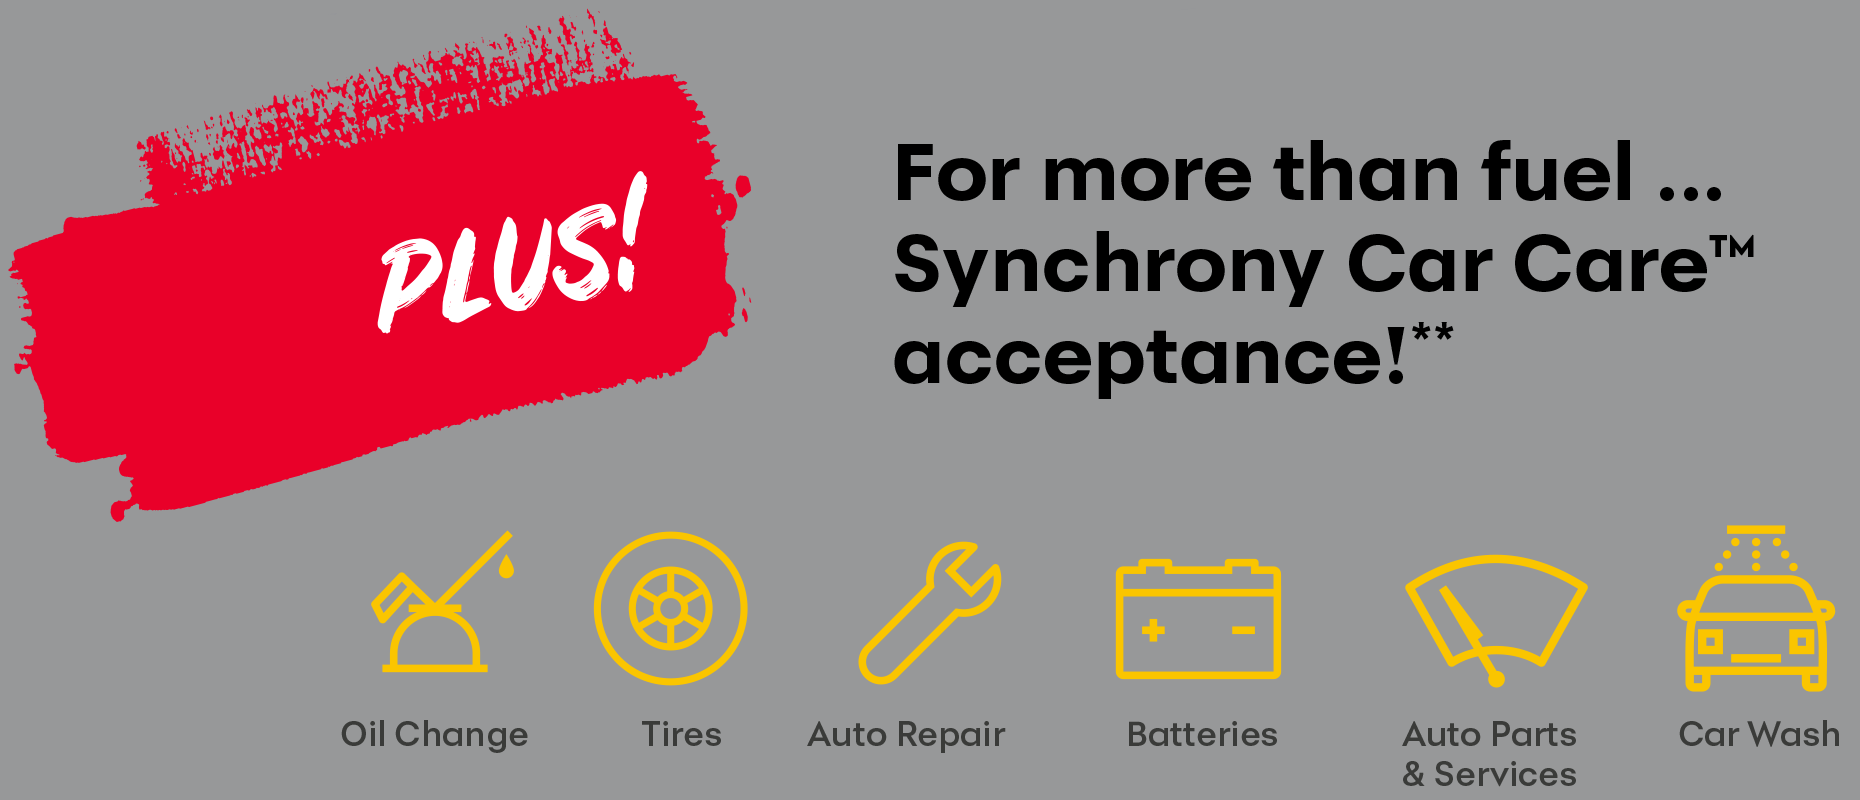 PLUS! For more than fuel... Synchrony Car Care™ acceptance!** Oil Change - Tires - Auto Repair - Batteries - Auto Parts & Services - Car Wash